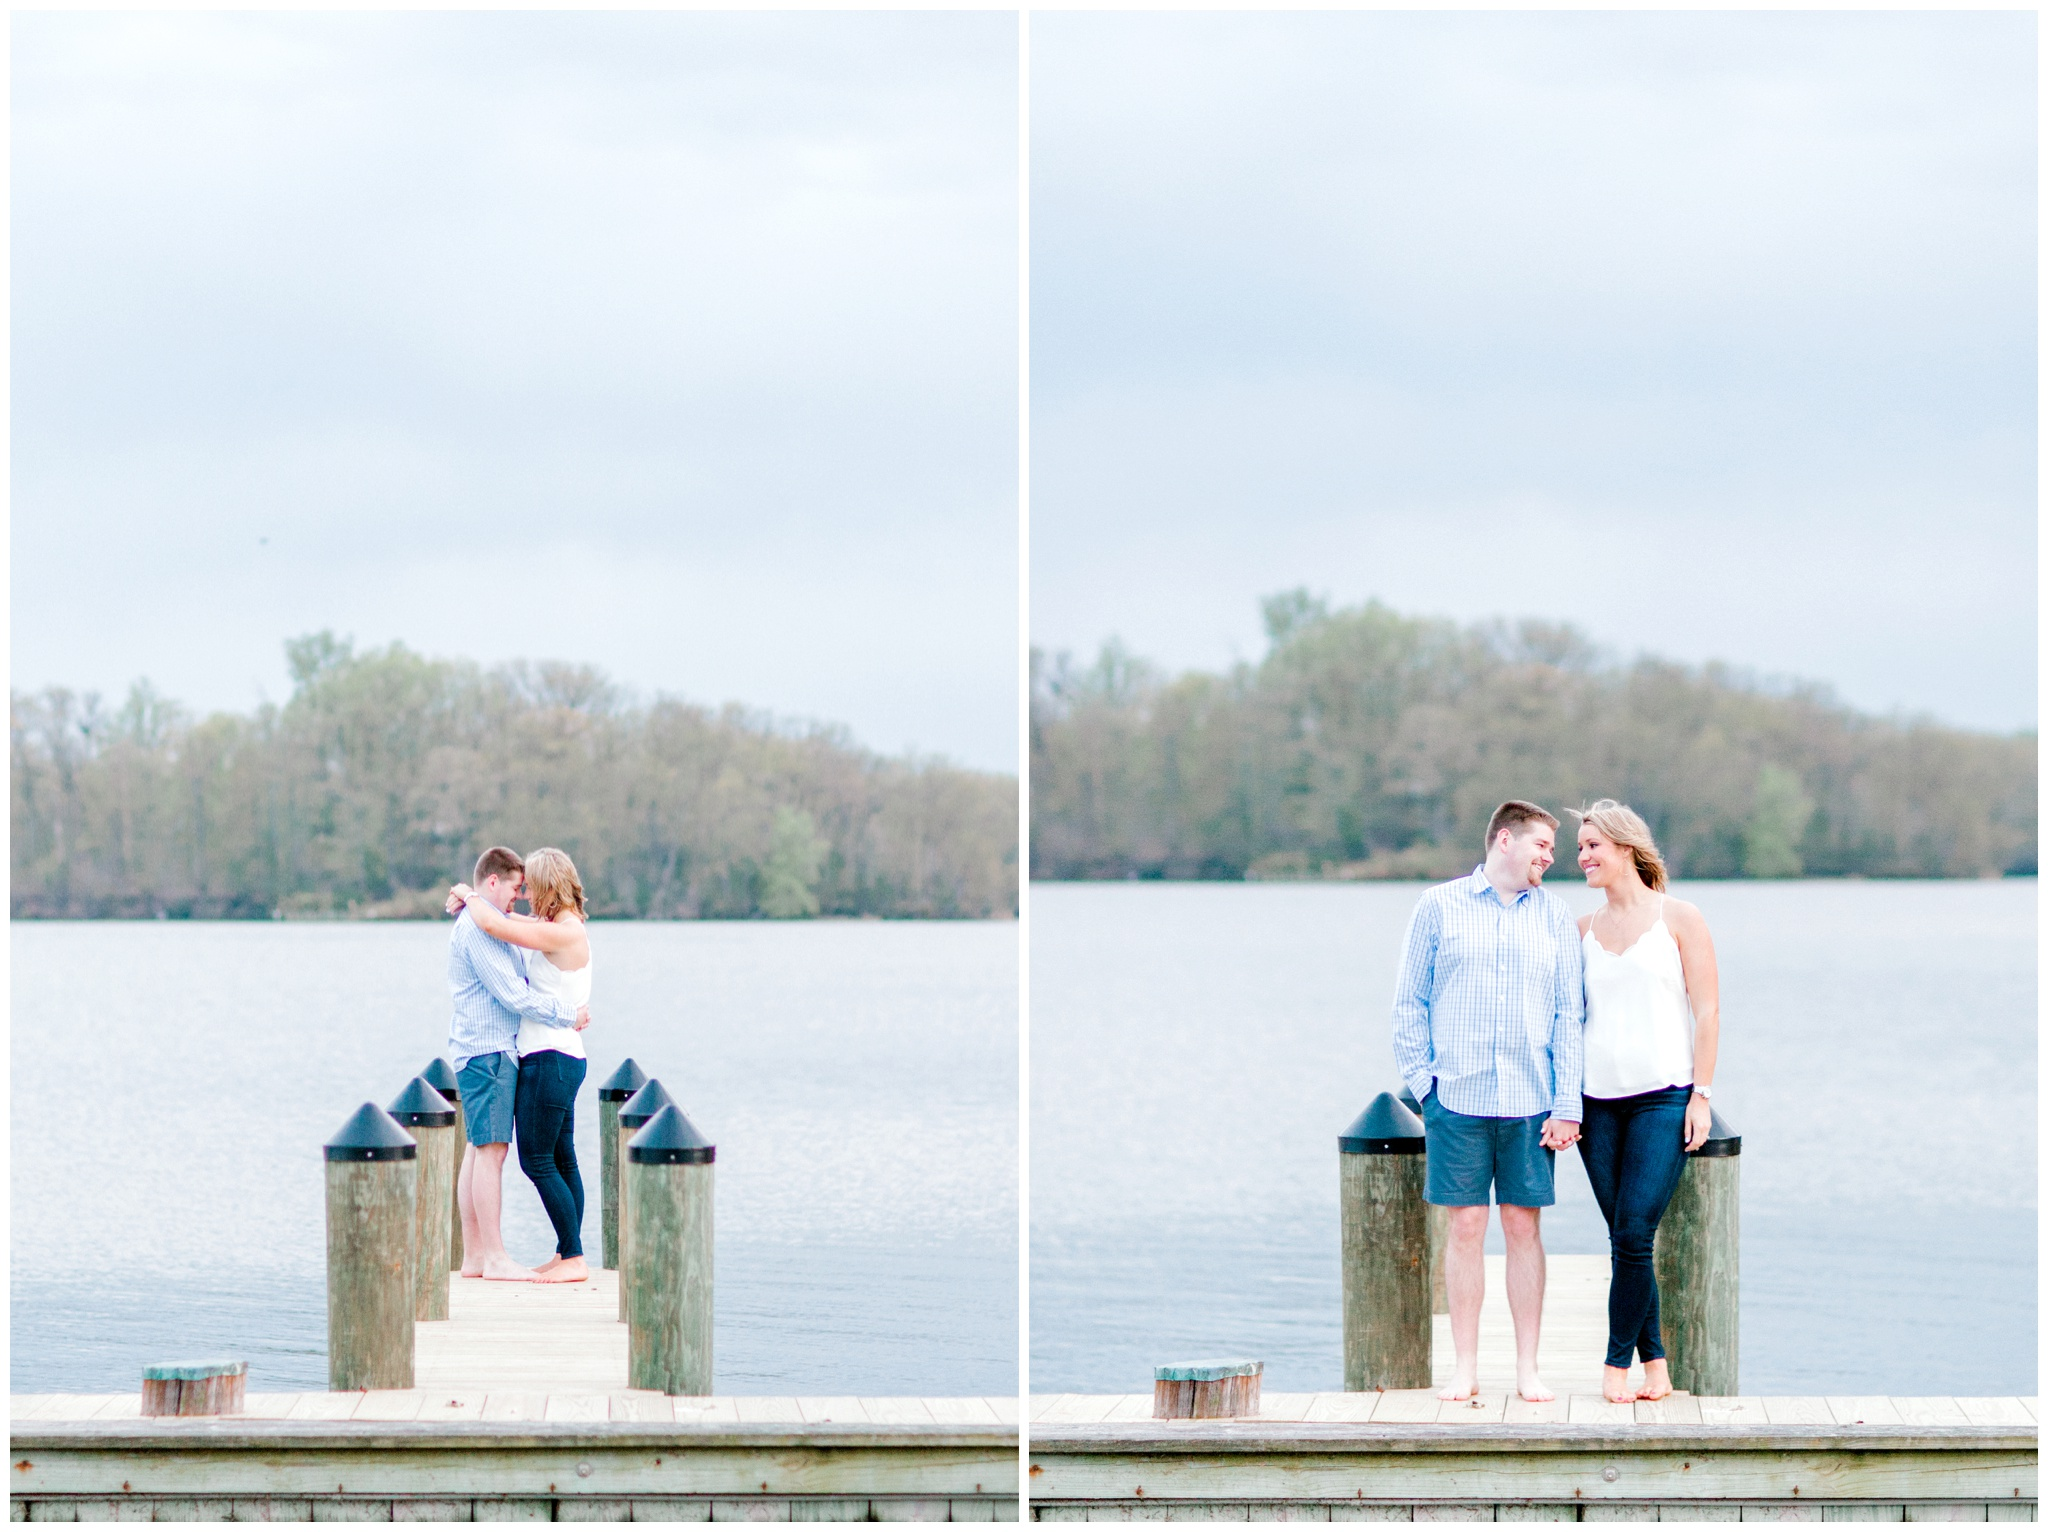 Annapolis engagement photographer, annapolis engagement session, annapolis wedding photographer, annapolis wedding, dc wedding photographer, maryland wedding photographer, waterfront annapolis engagement